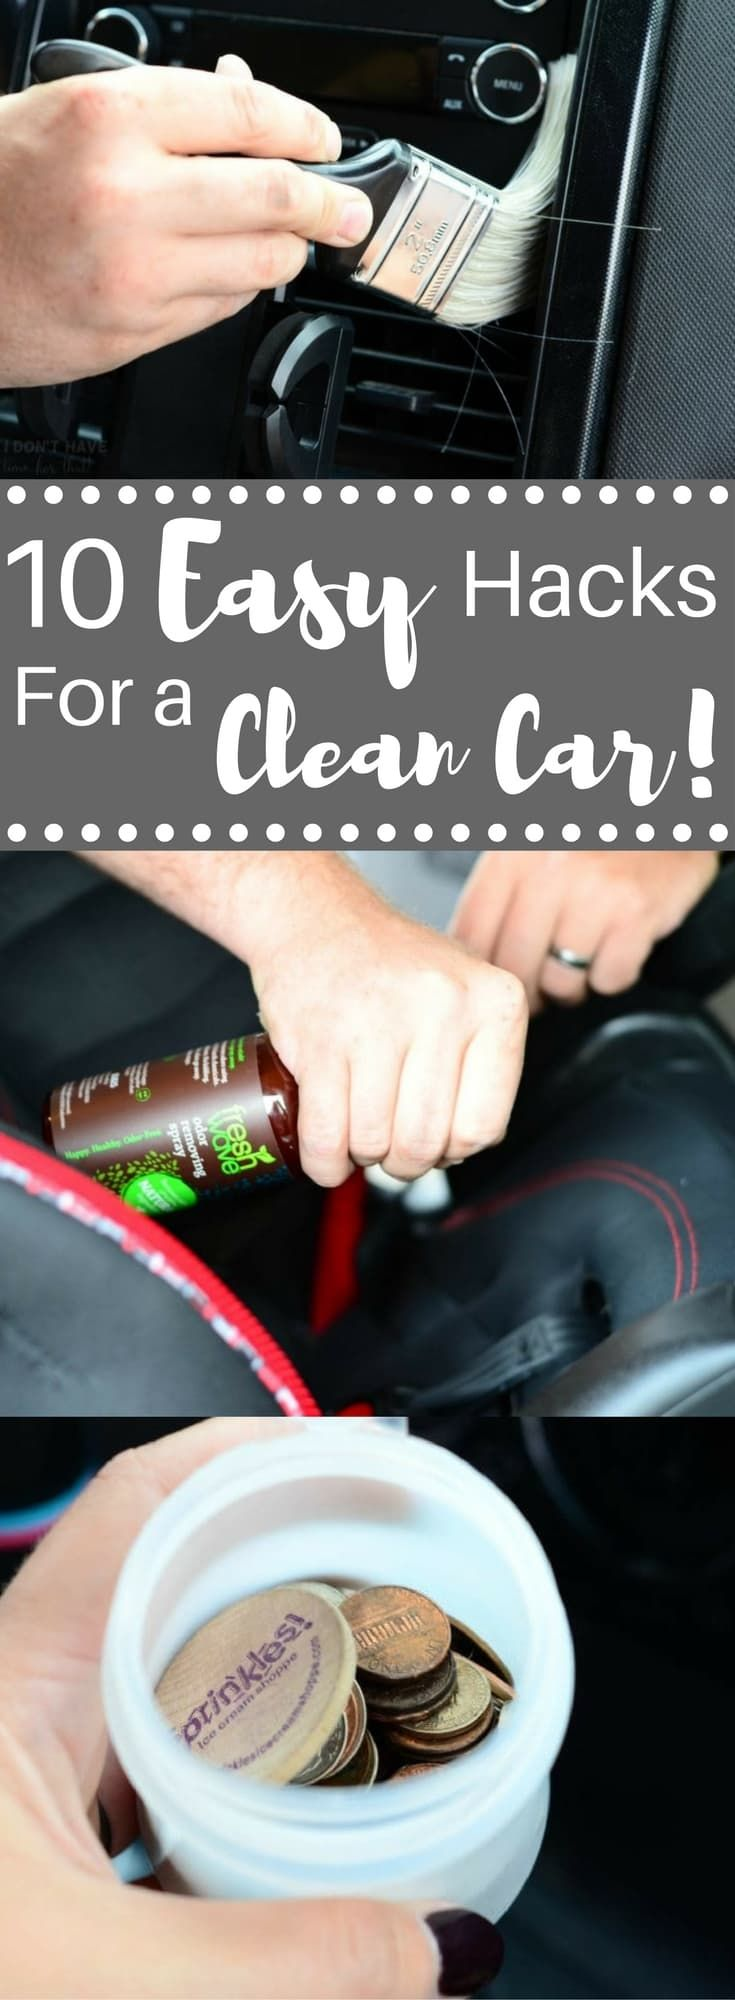 Top 10 Easy Hacks For a Clean Car!